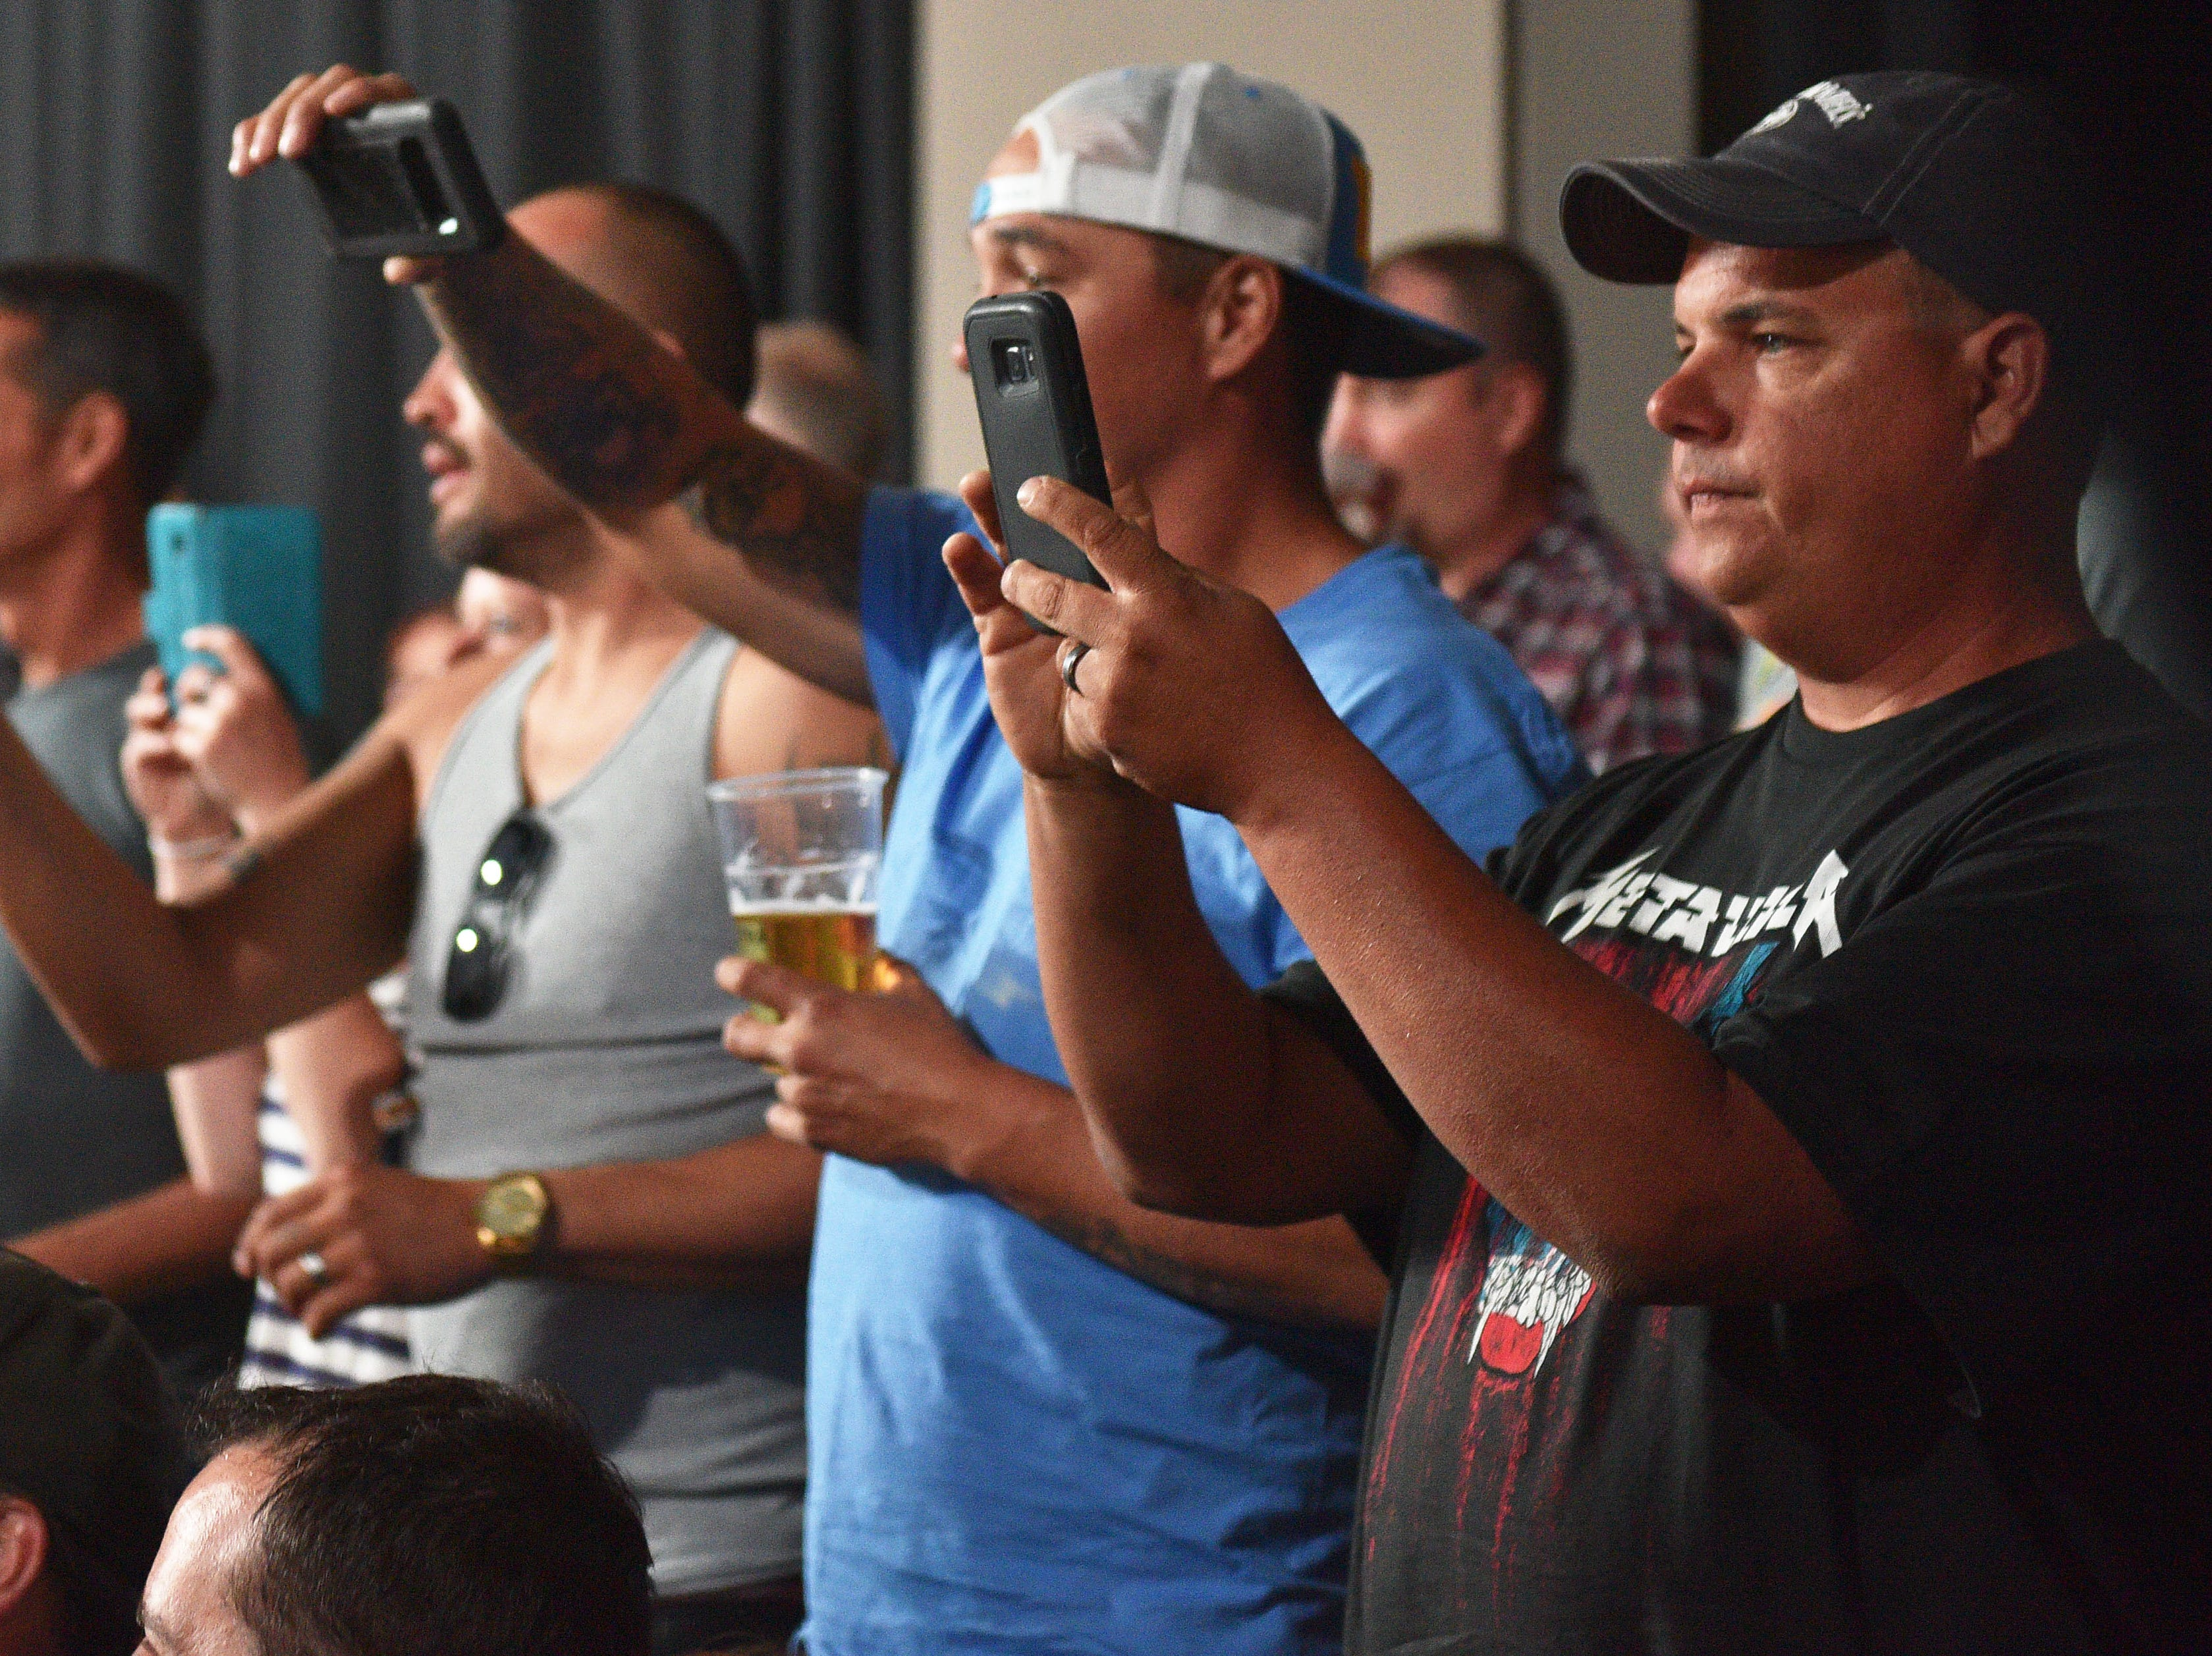 Metallica fans prepare to take photos of the band's entrance for the show Tuesday, Sept. 11, at the Denny Sanford Premier Center in Sioux Falls.